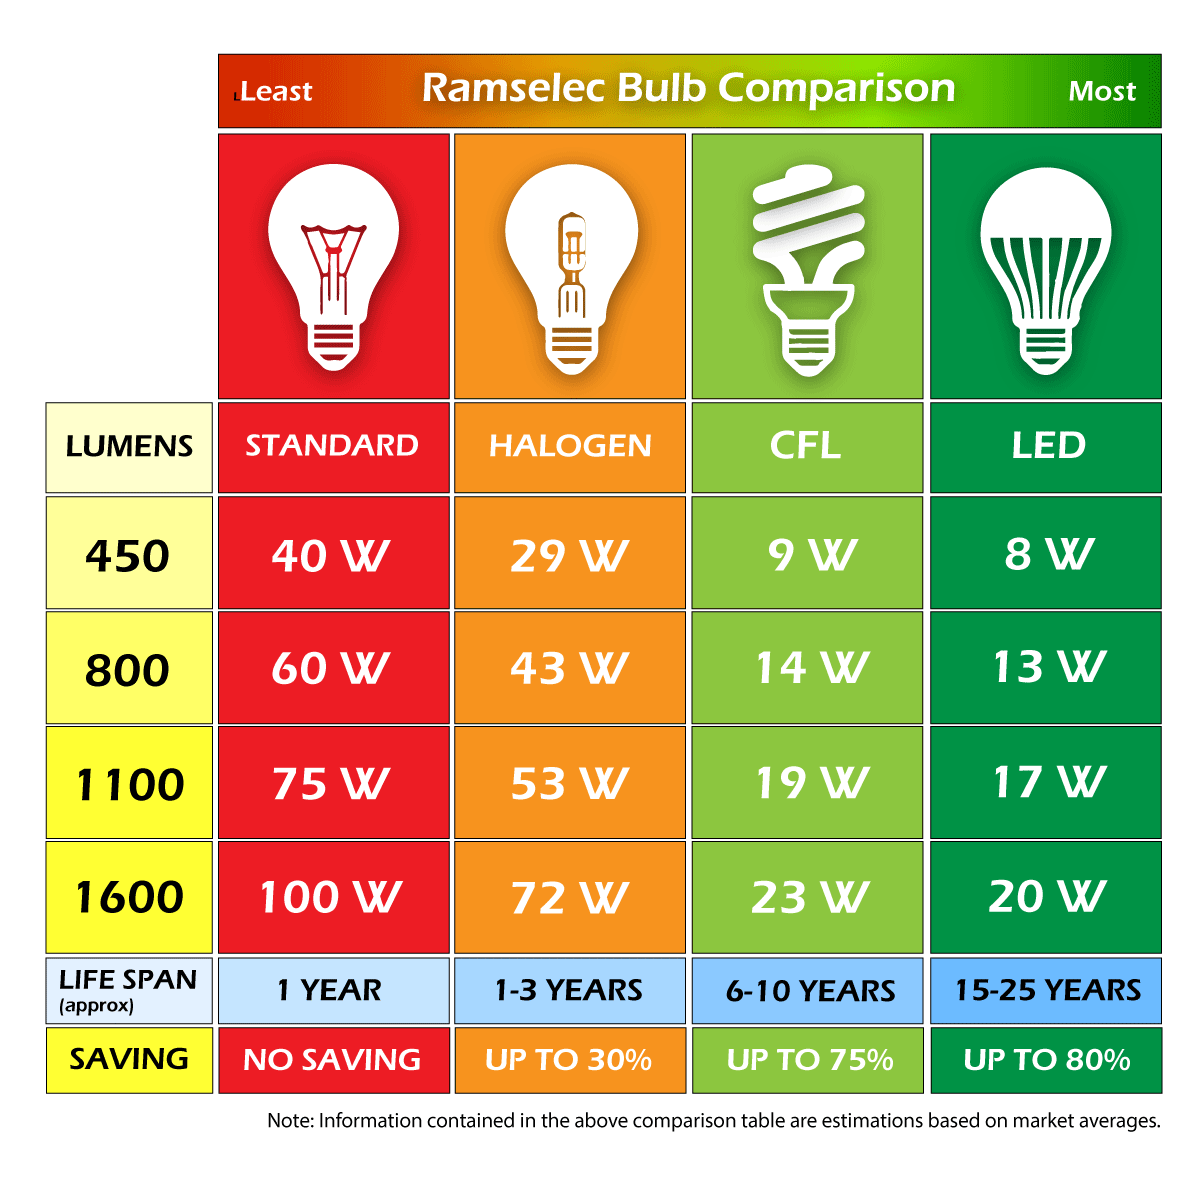 bulb_comparison_ramselec